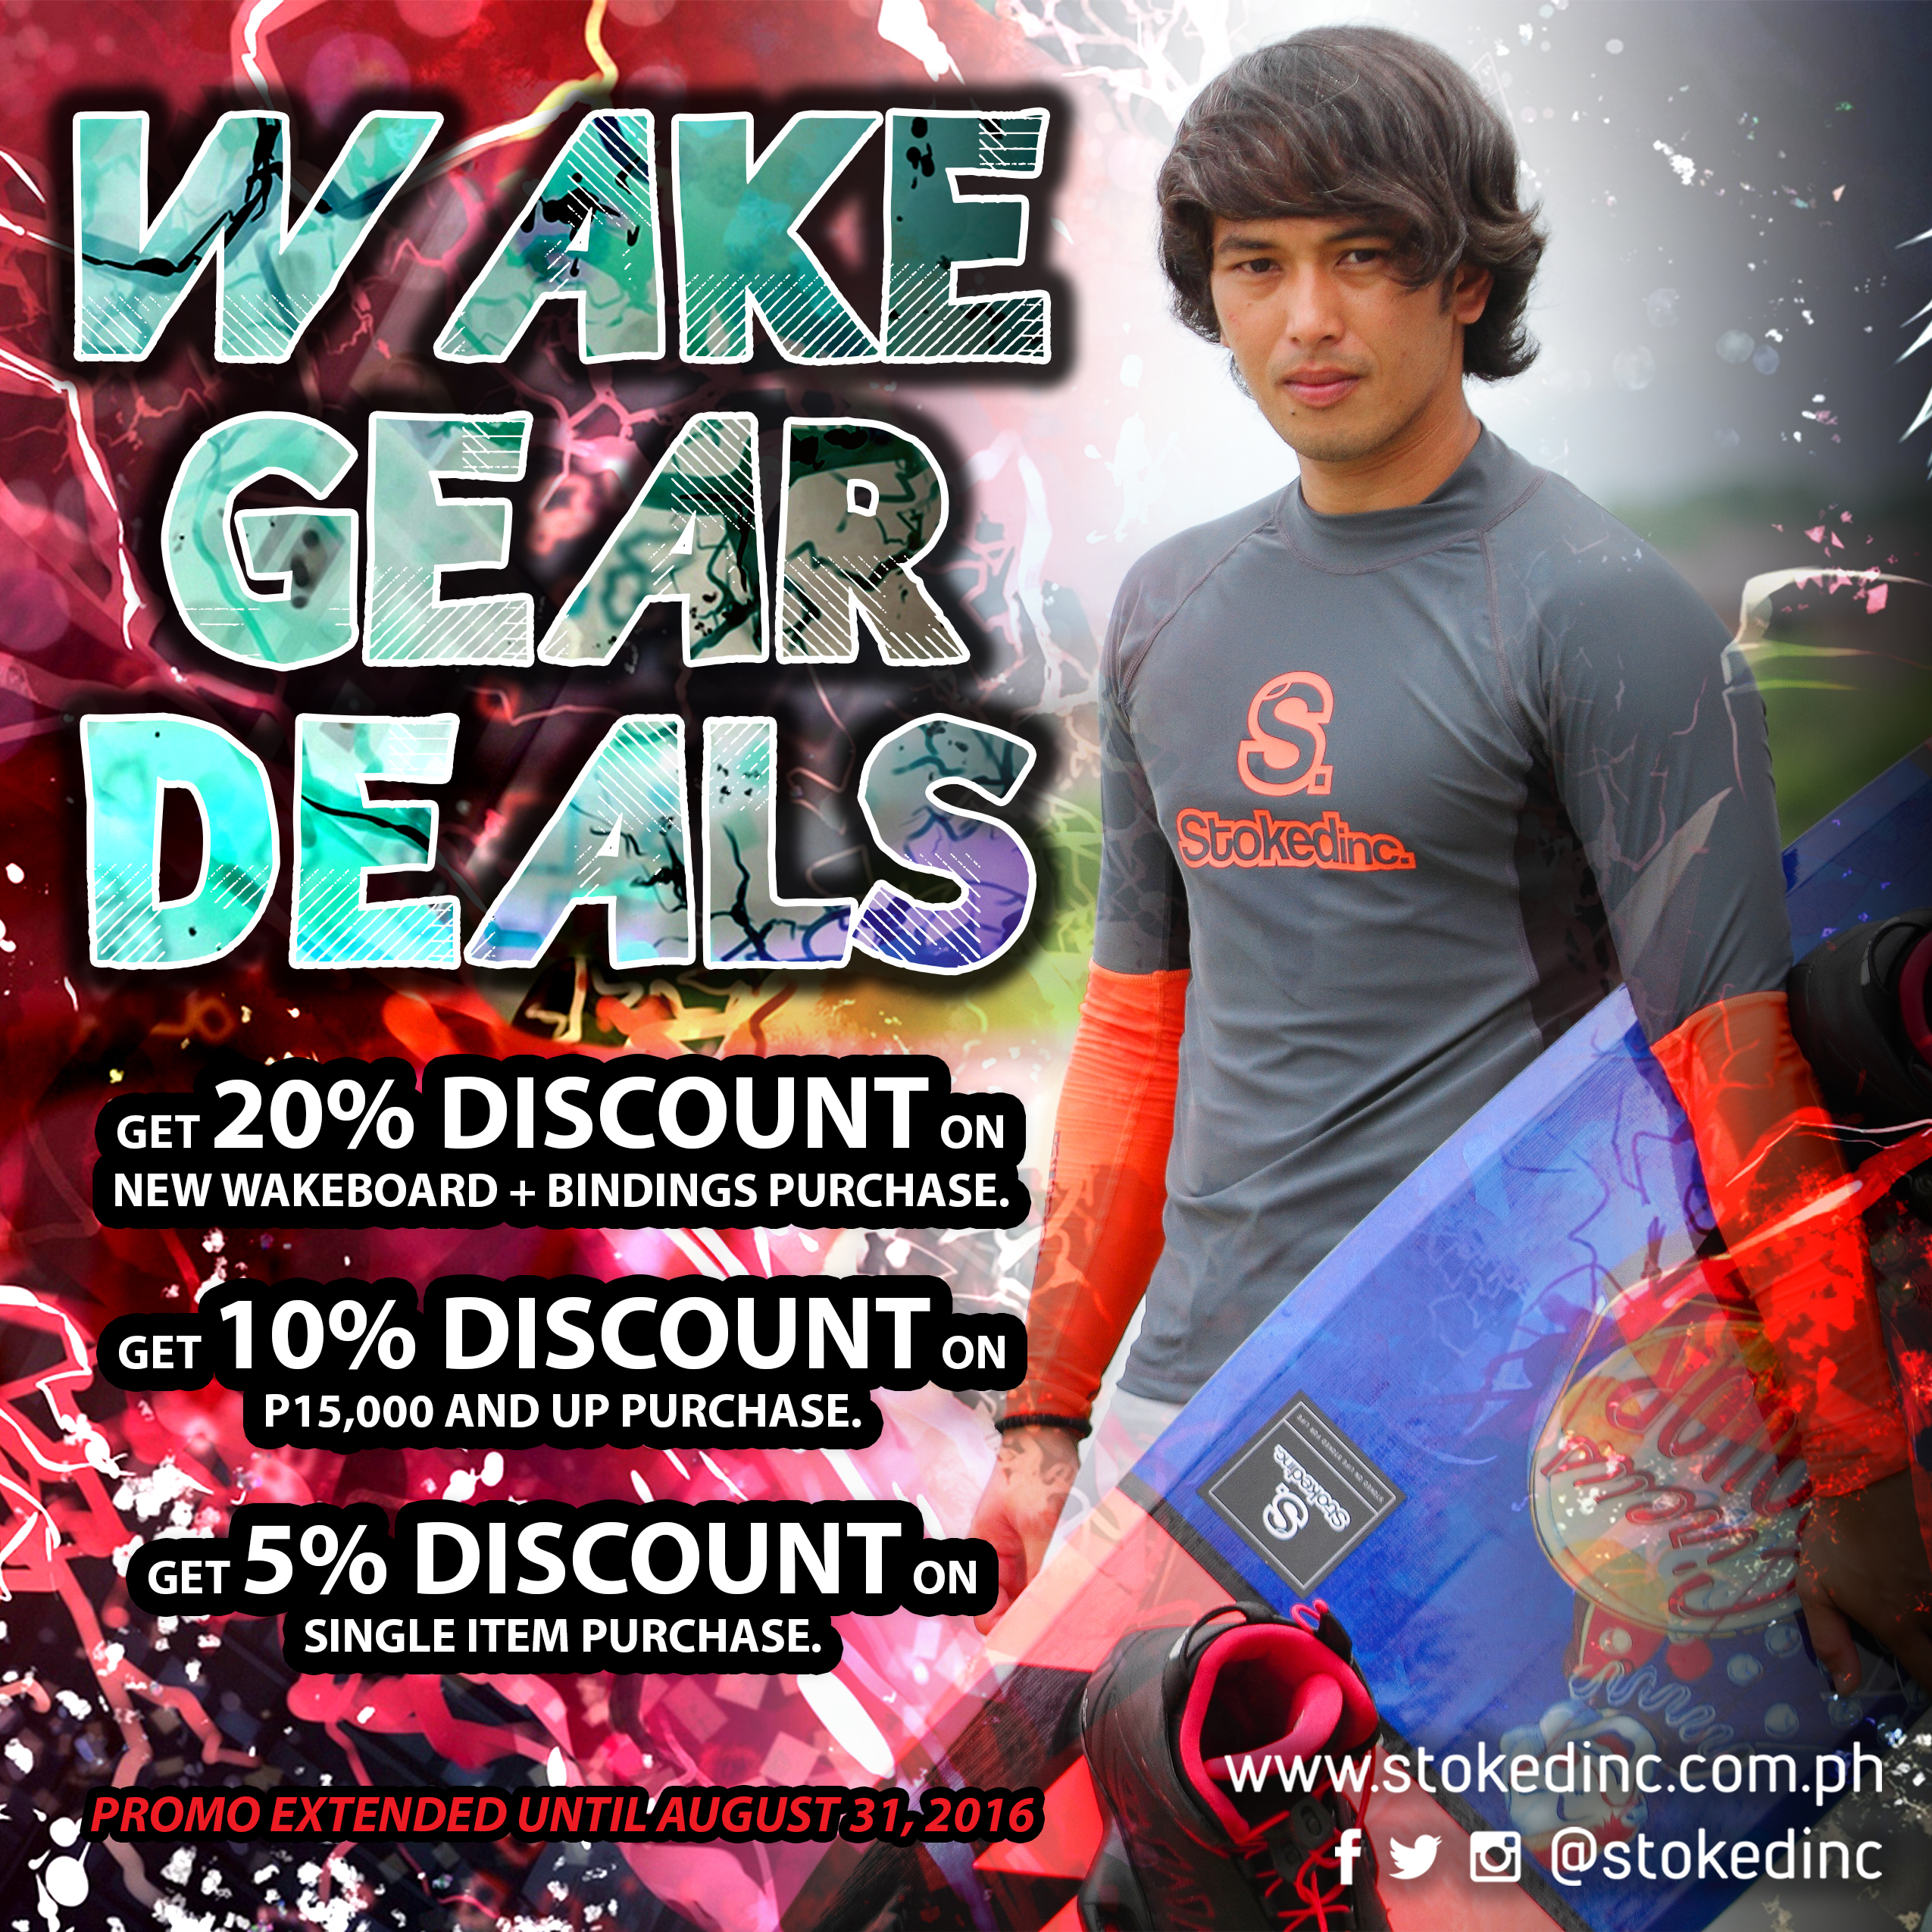 wake gear deals extended